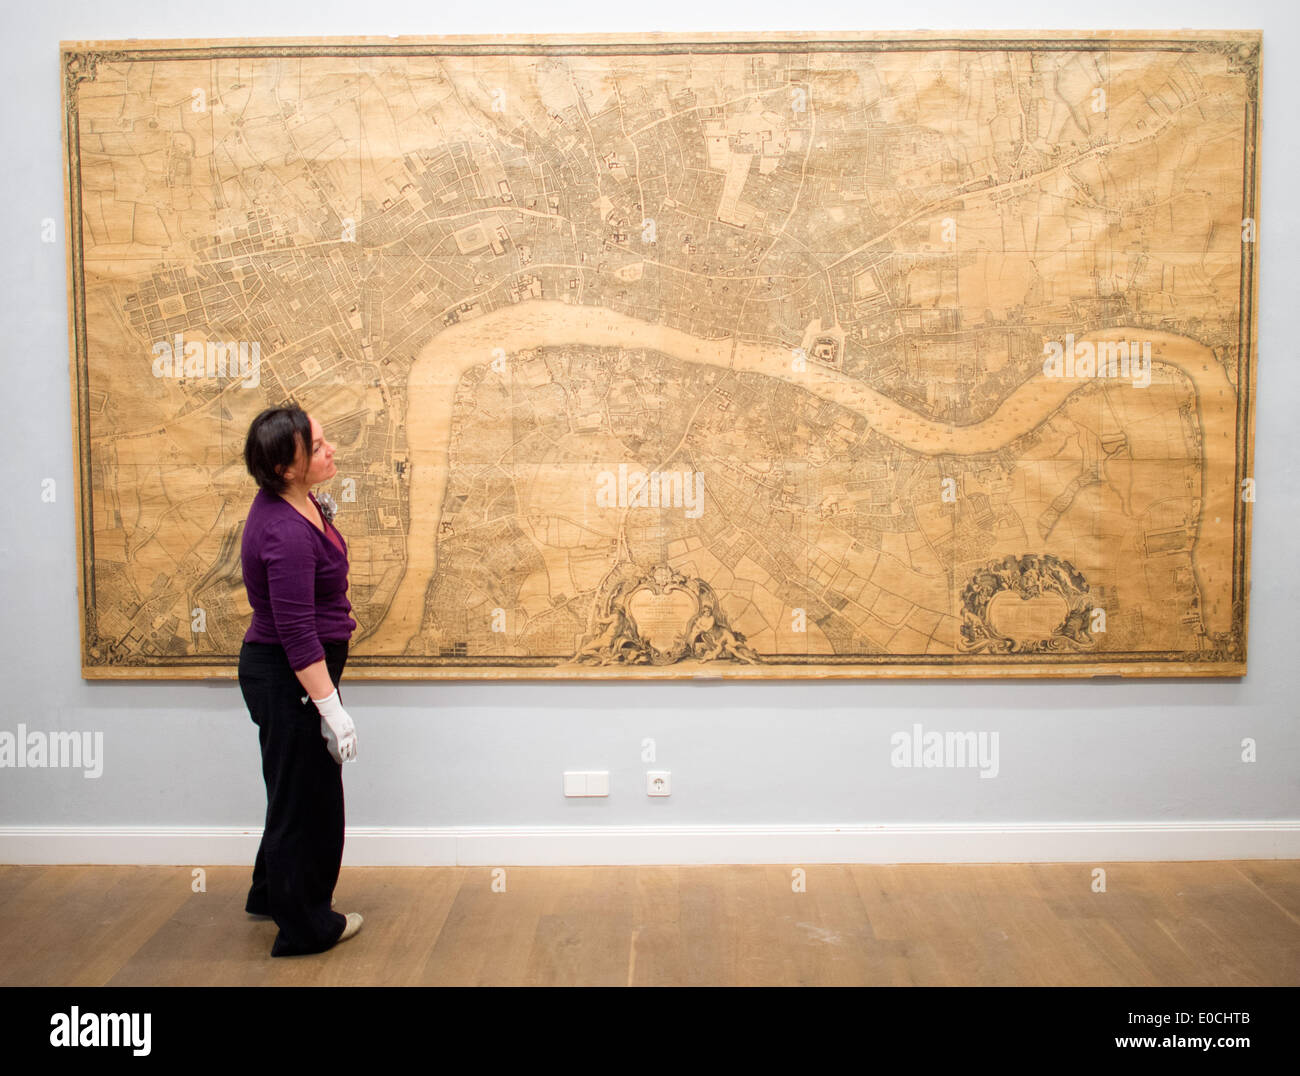 Museum employees hang a map of London